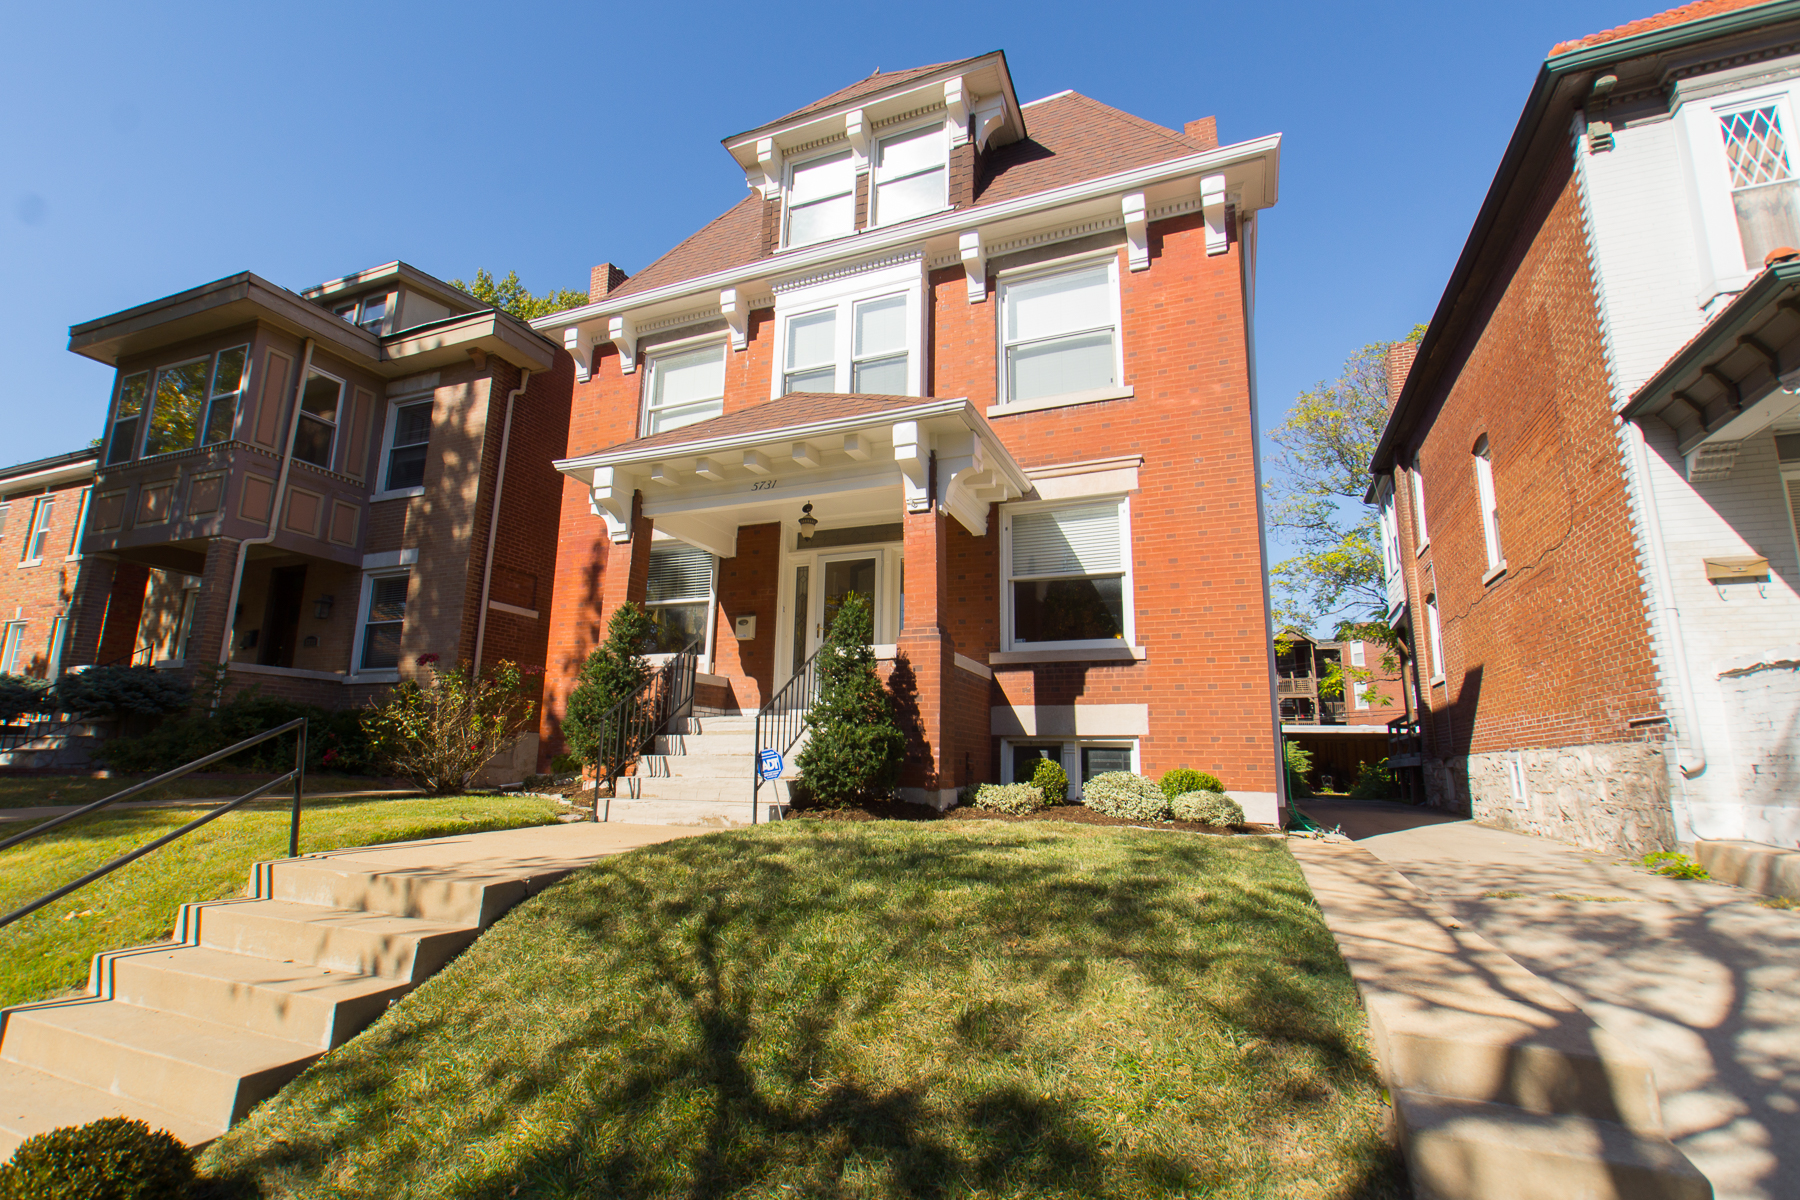 Single Family Home for Sale at Waterman Blvd 5731 Waterman Blvd St. Louis, Missouri, 63112 United States